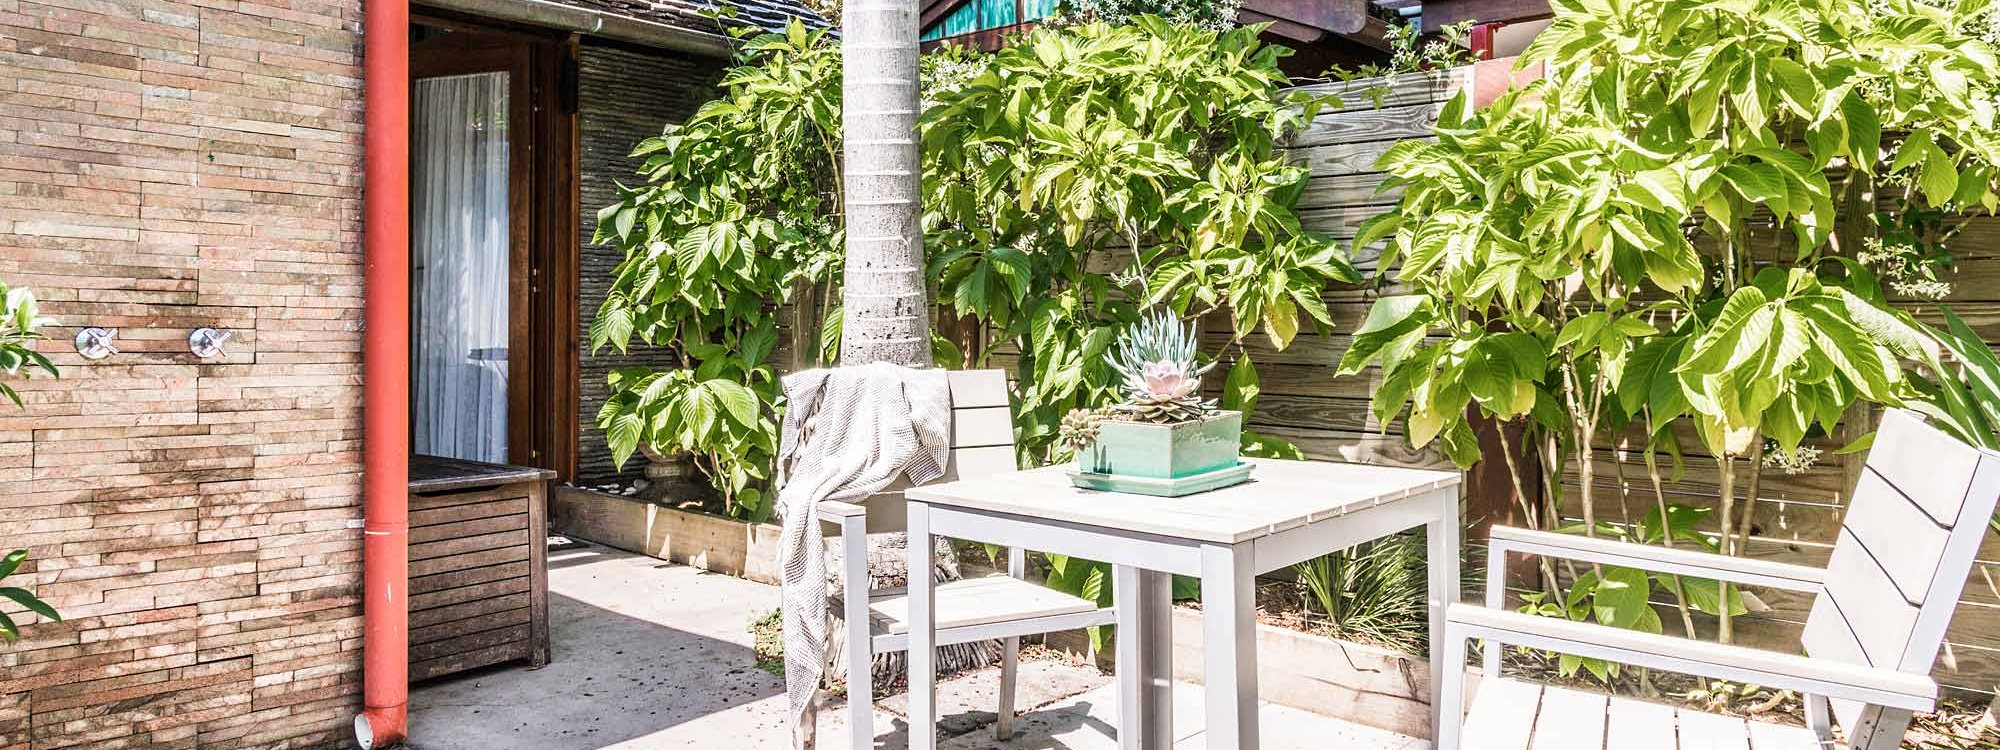 Byron Blisshouse - Byron Bay - Studio Outdoor Shower and Table Setting